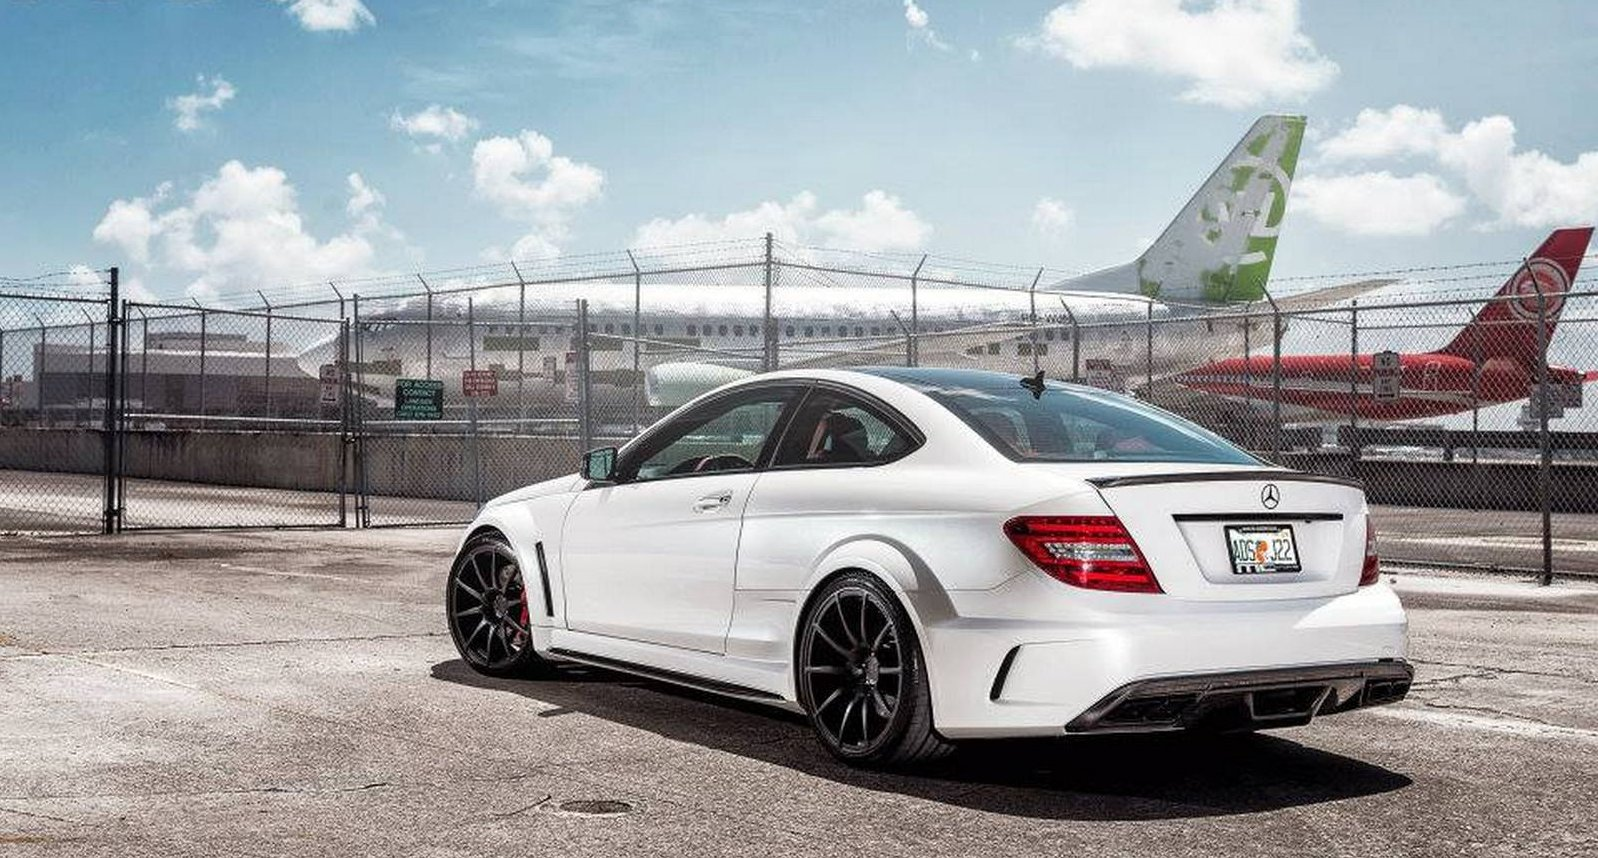 2015 Mercedes Benz C63 AMG Wallpaper picture size 1598x858 posted by 1598x858